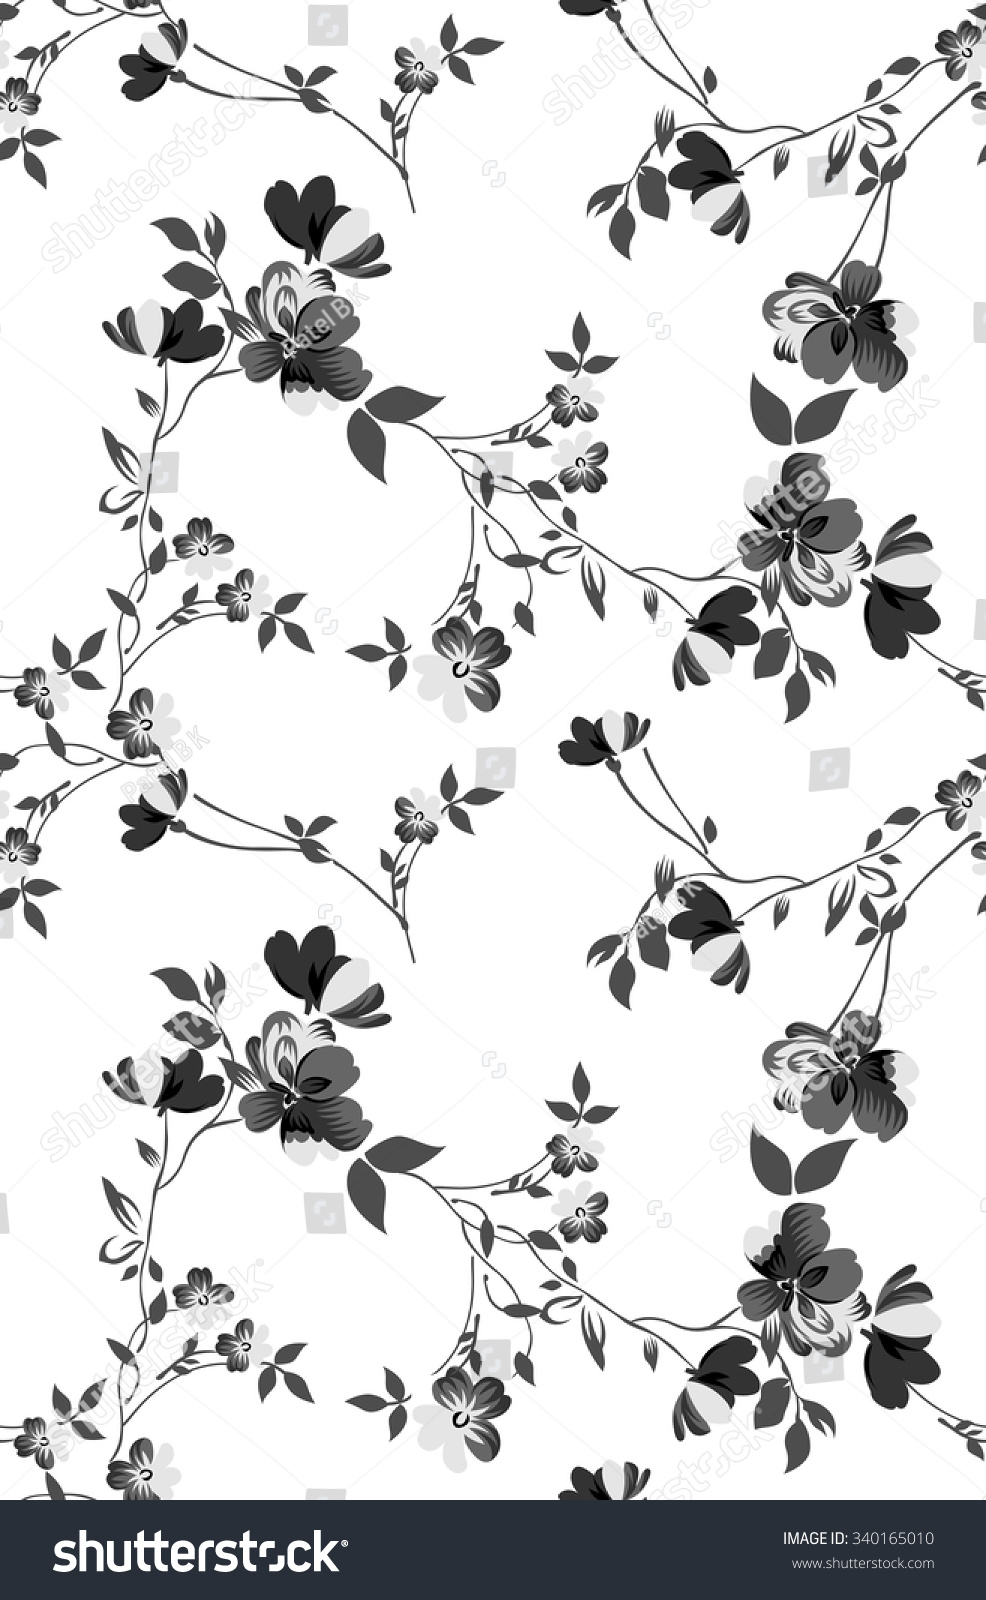 Seamless Black White Flower Wallpaper Pattern Stock Vector Royalty